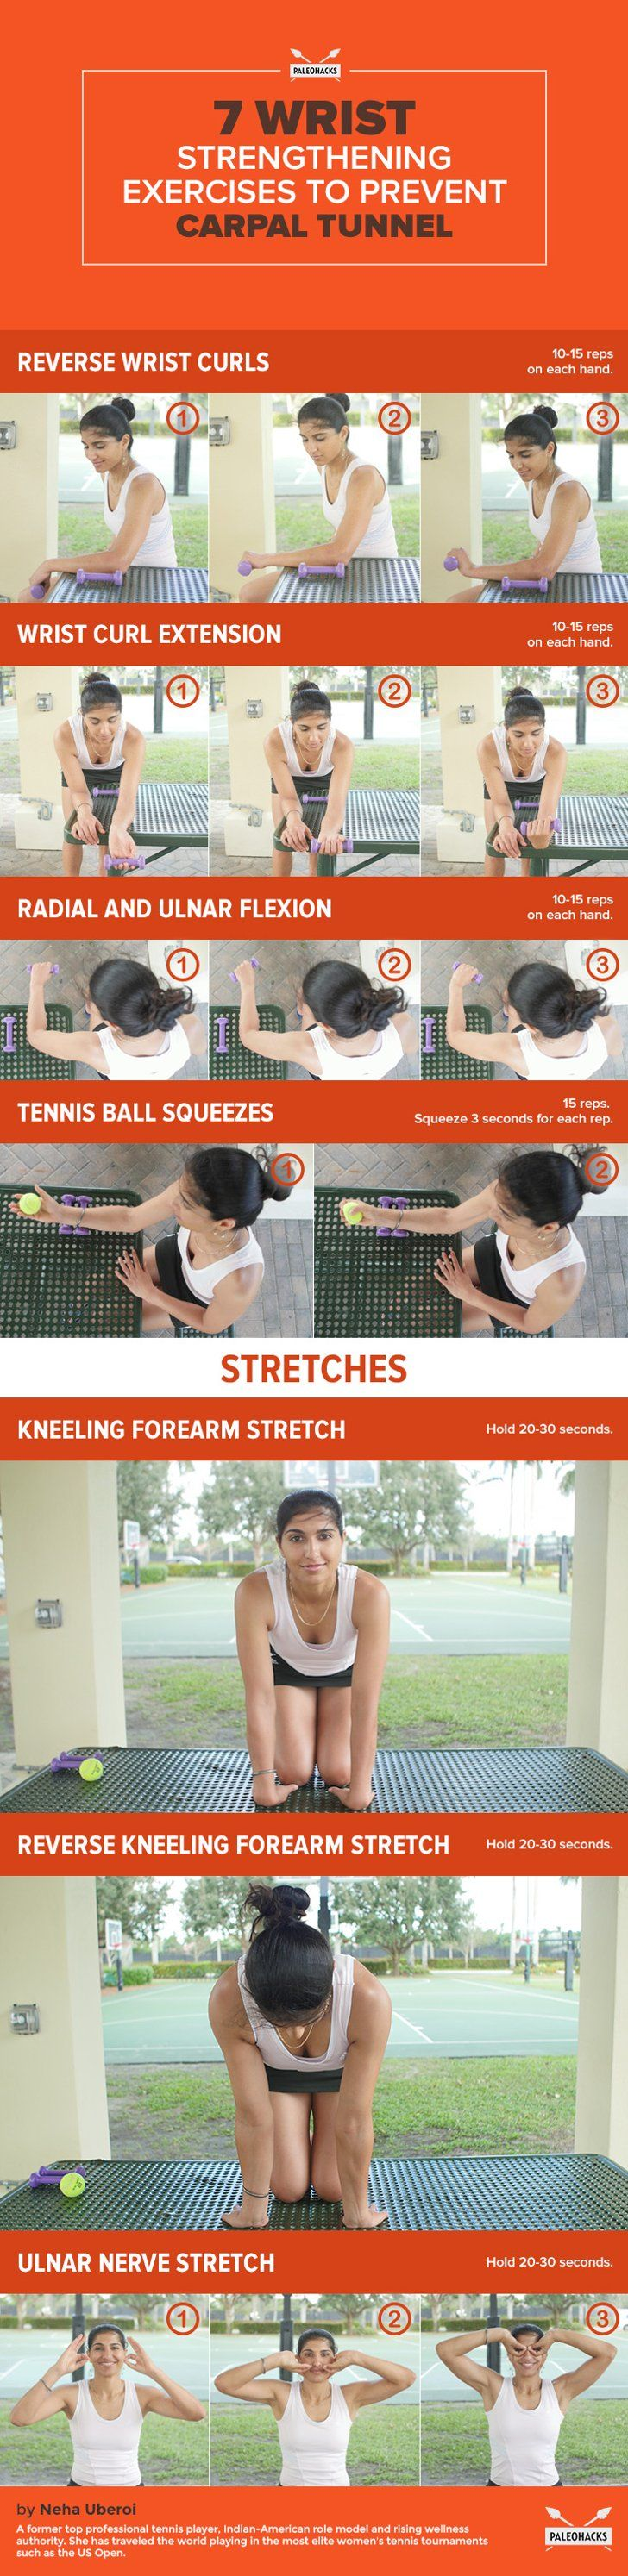 7 Wrist Exercises and Stretches to Prevent Carpal Tunnel